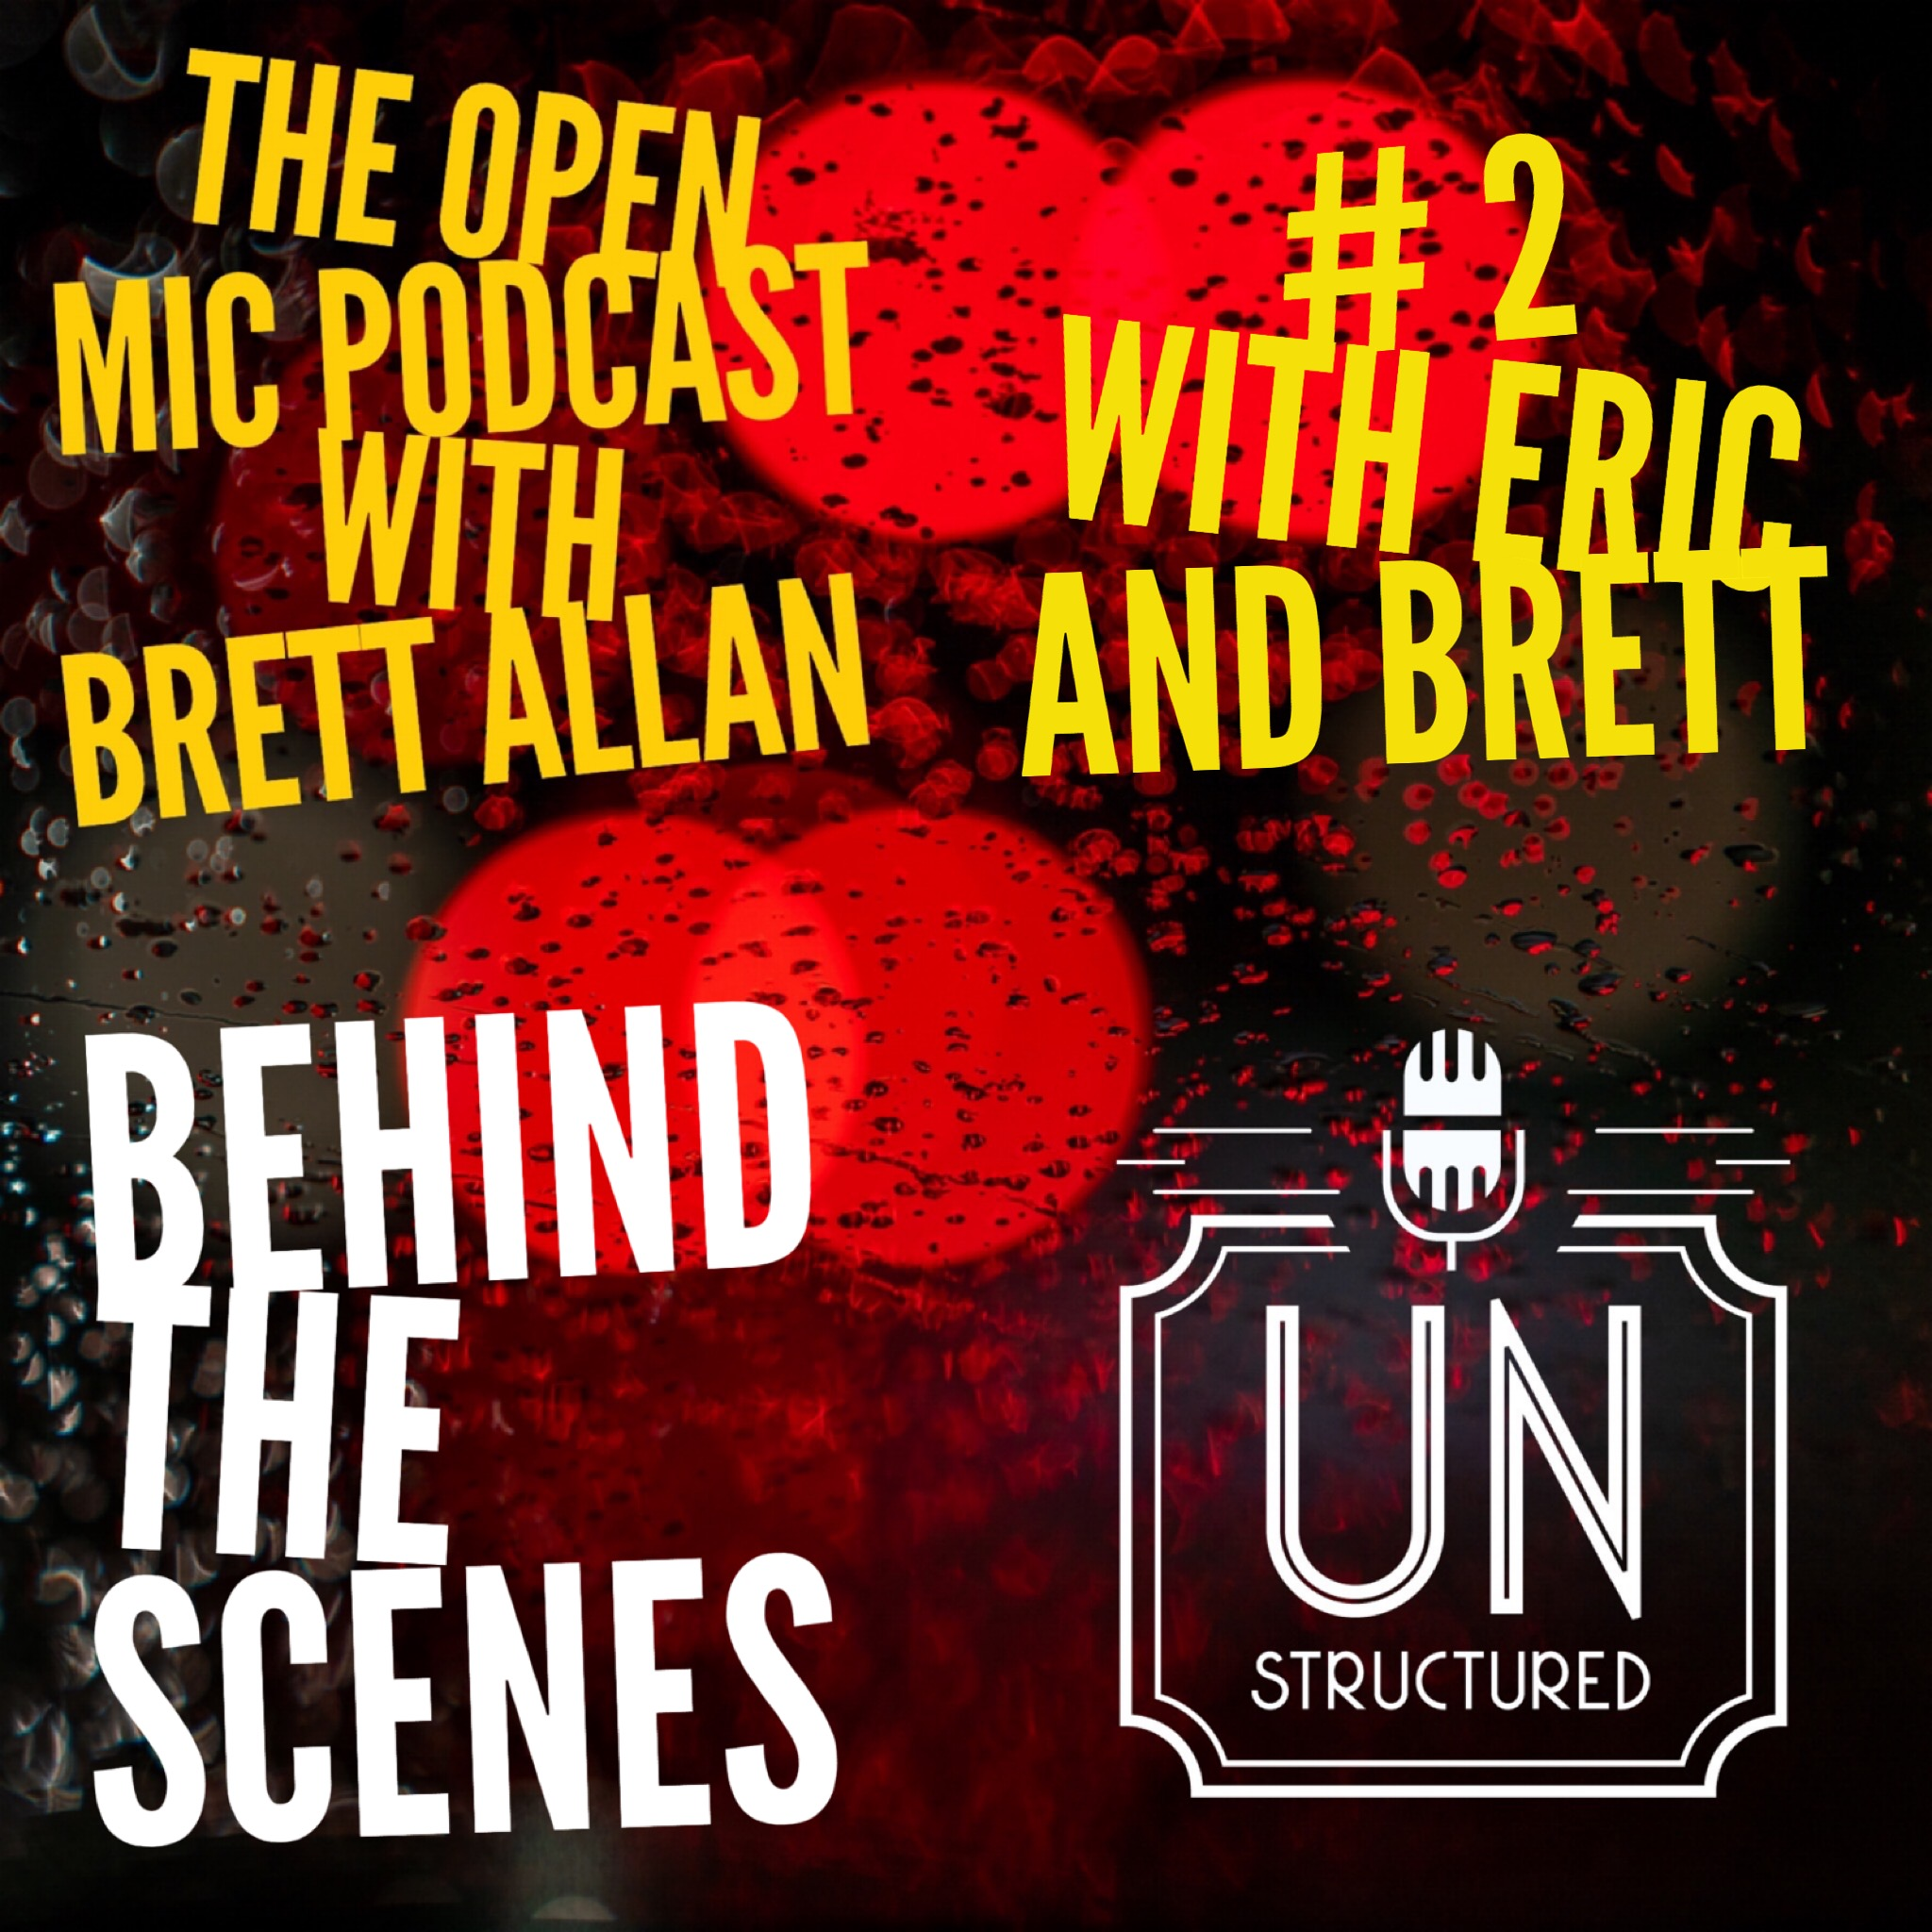 116 - Behind the Scenes - Unique wide-ranging and well-researched unstructured interviews hosted by Eric Hunley UnstructuredPod Dynamic Informal Conversations